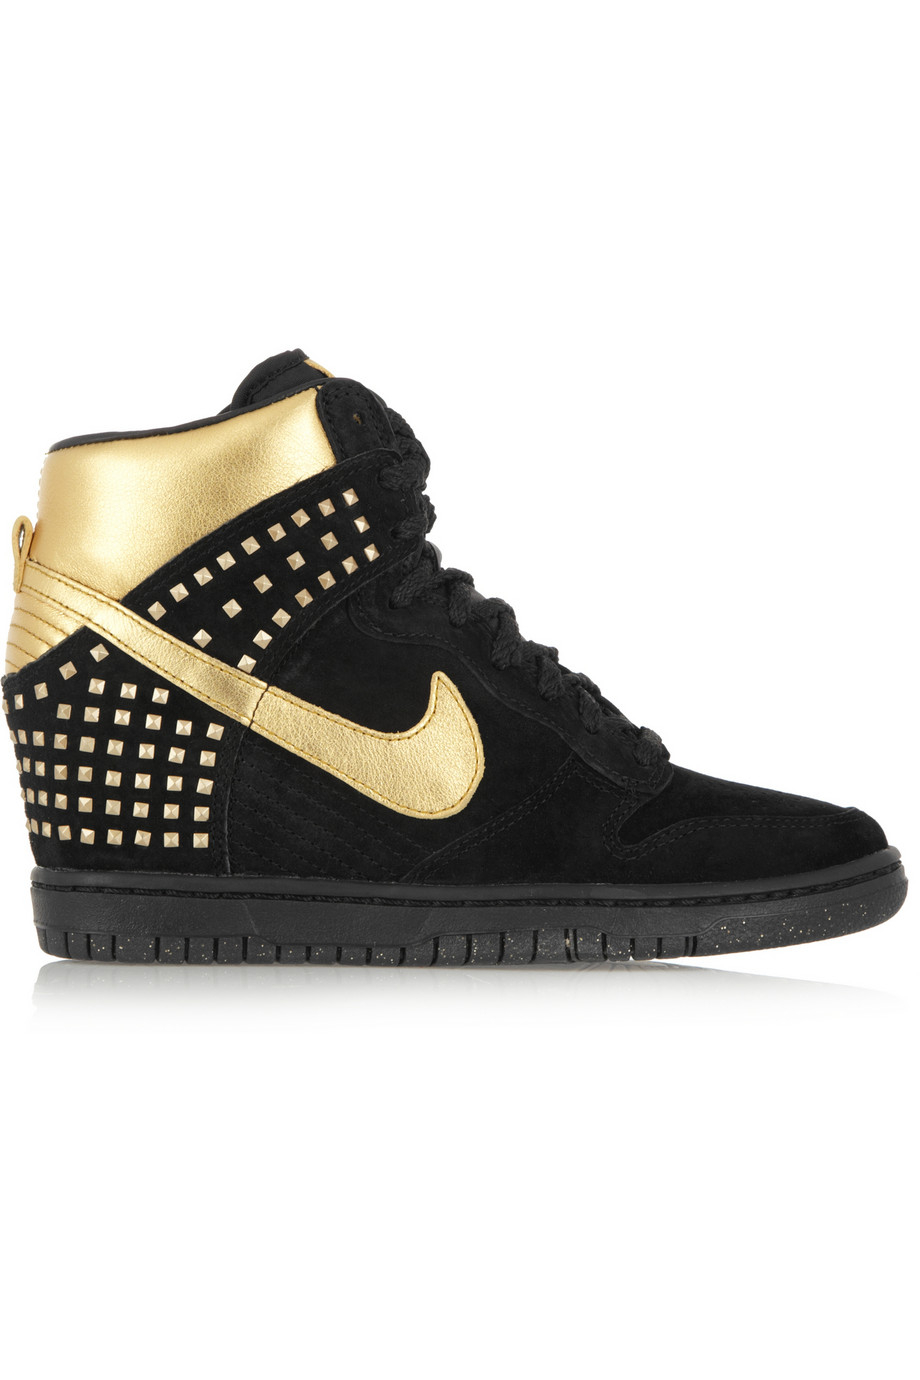 half off 3e118 46789 ... greece nike dunk sky hi suede and metallic leather wedge sneakers in  black 01228 612b0